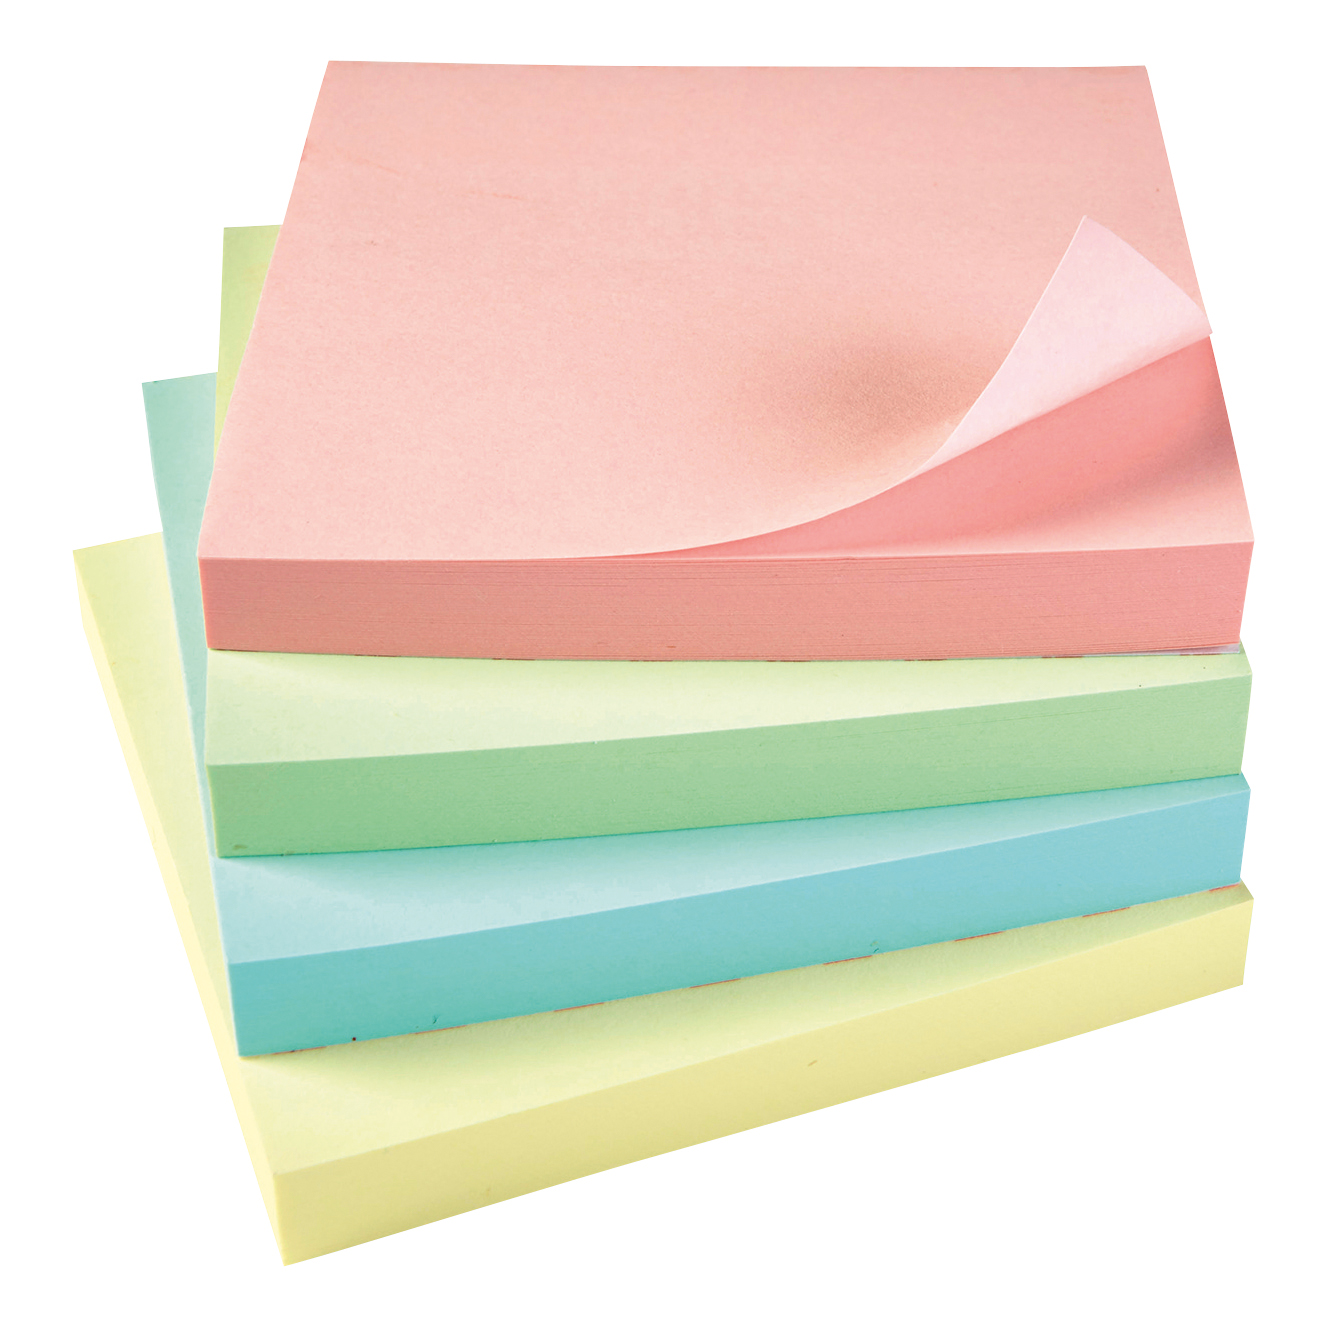 Coloured 5 Star Office Re-Move Notes Repositionable Pastel Pad of 100 Sheets 76x76mm Assorted Pack 12